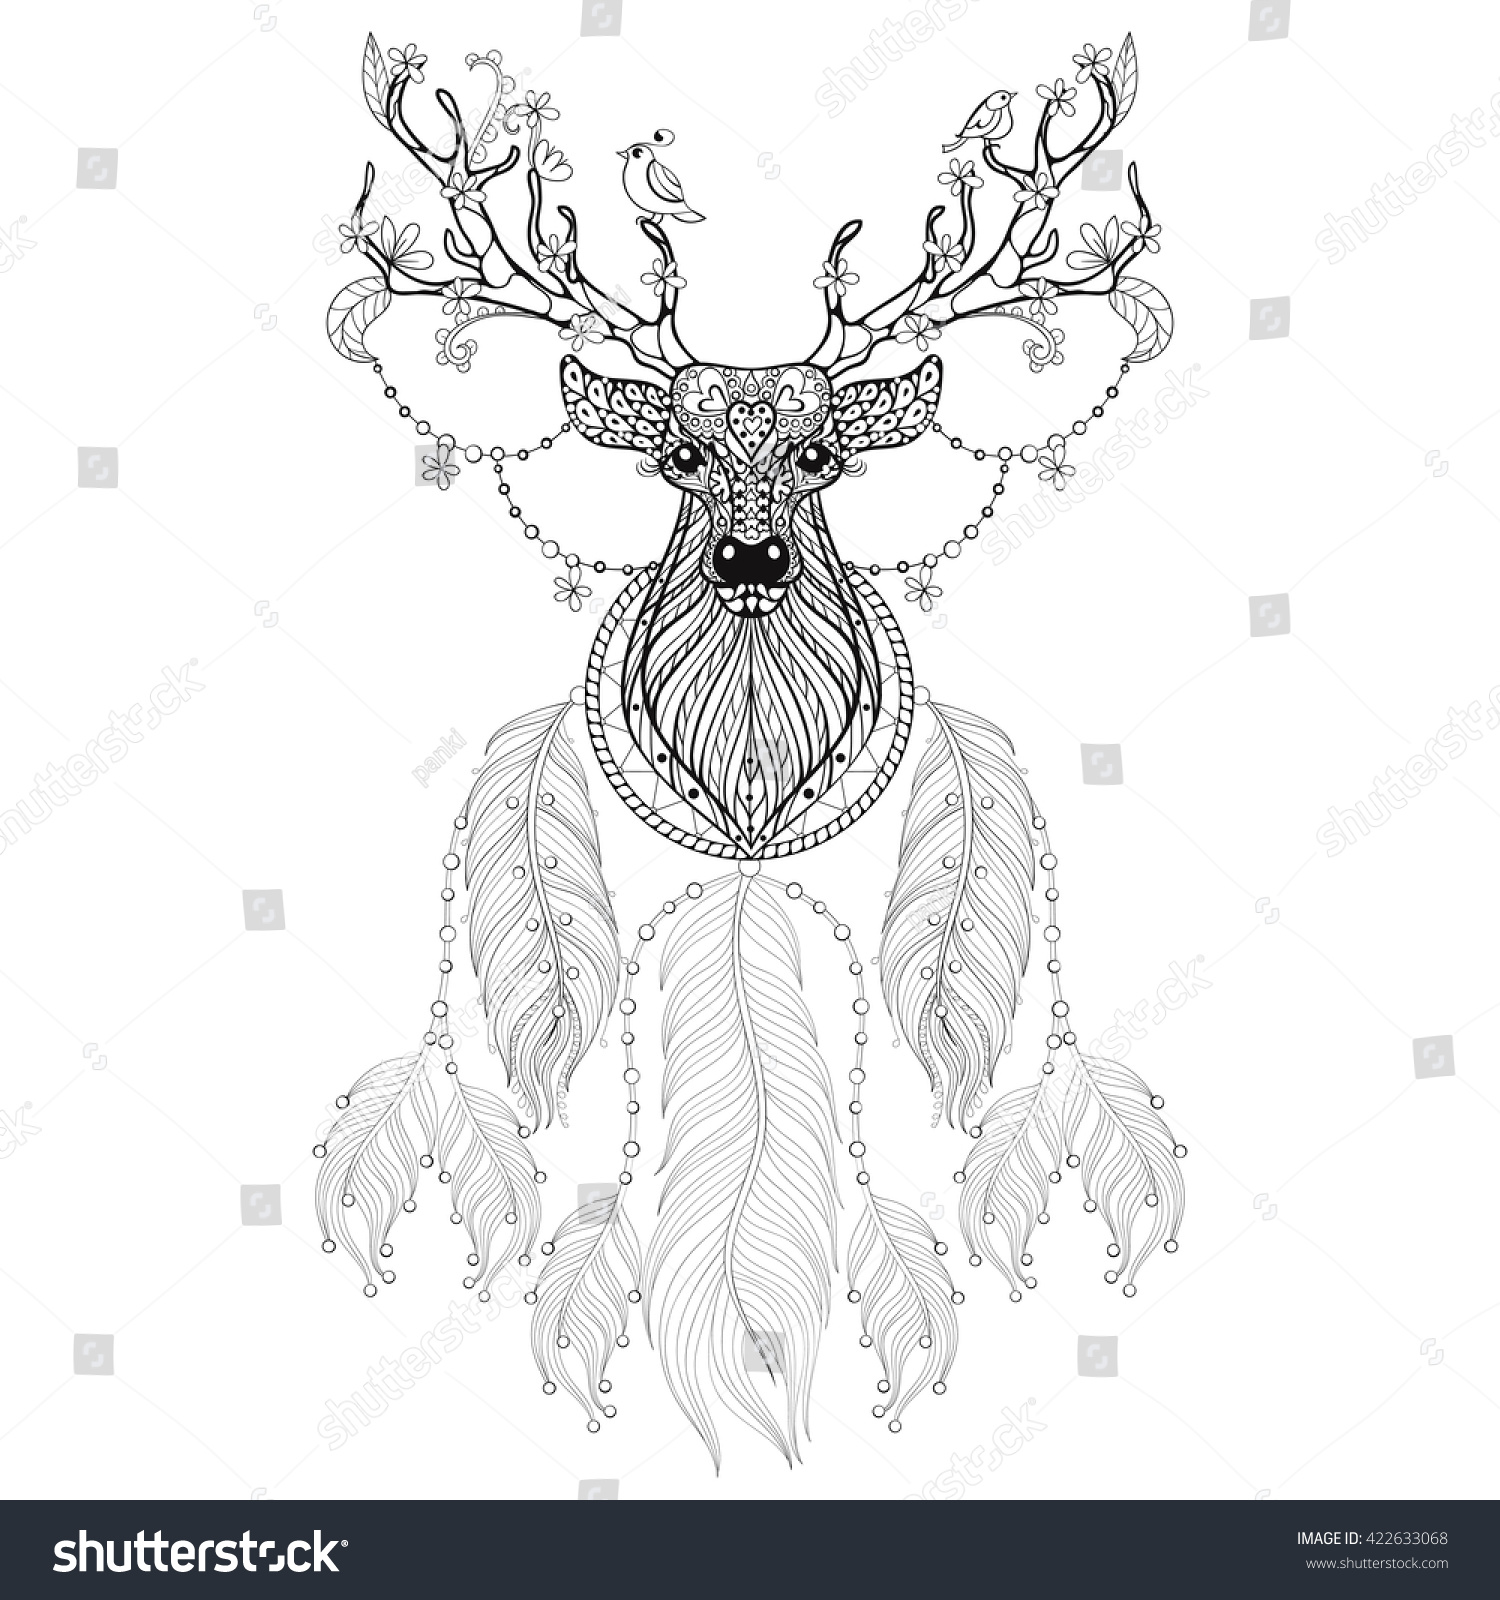 Drawing pages of deer - Hand Drawn Zentangle Dreamcatcher With Tribal Horned Deer With Flowers And Birds For Adult Coloring Pages